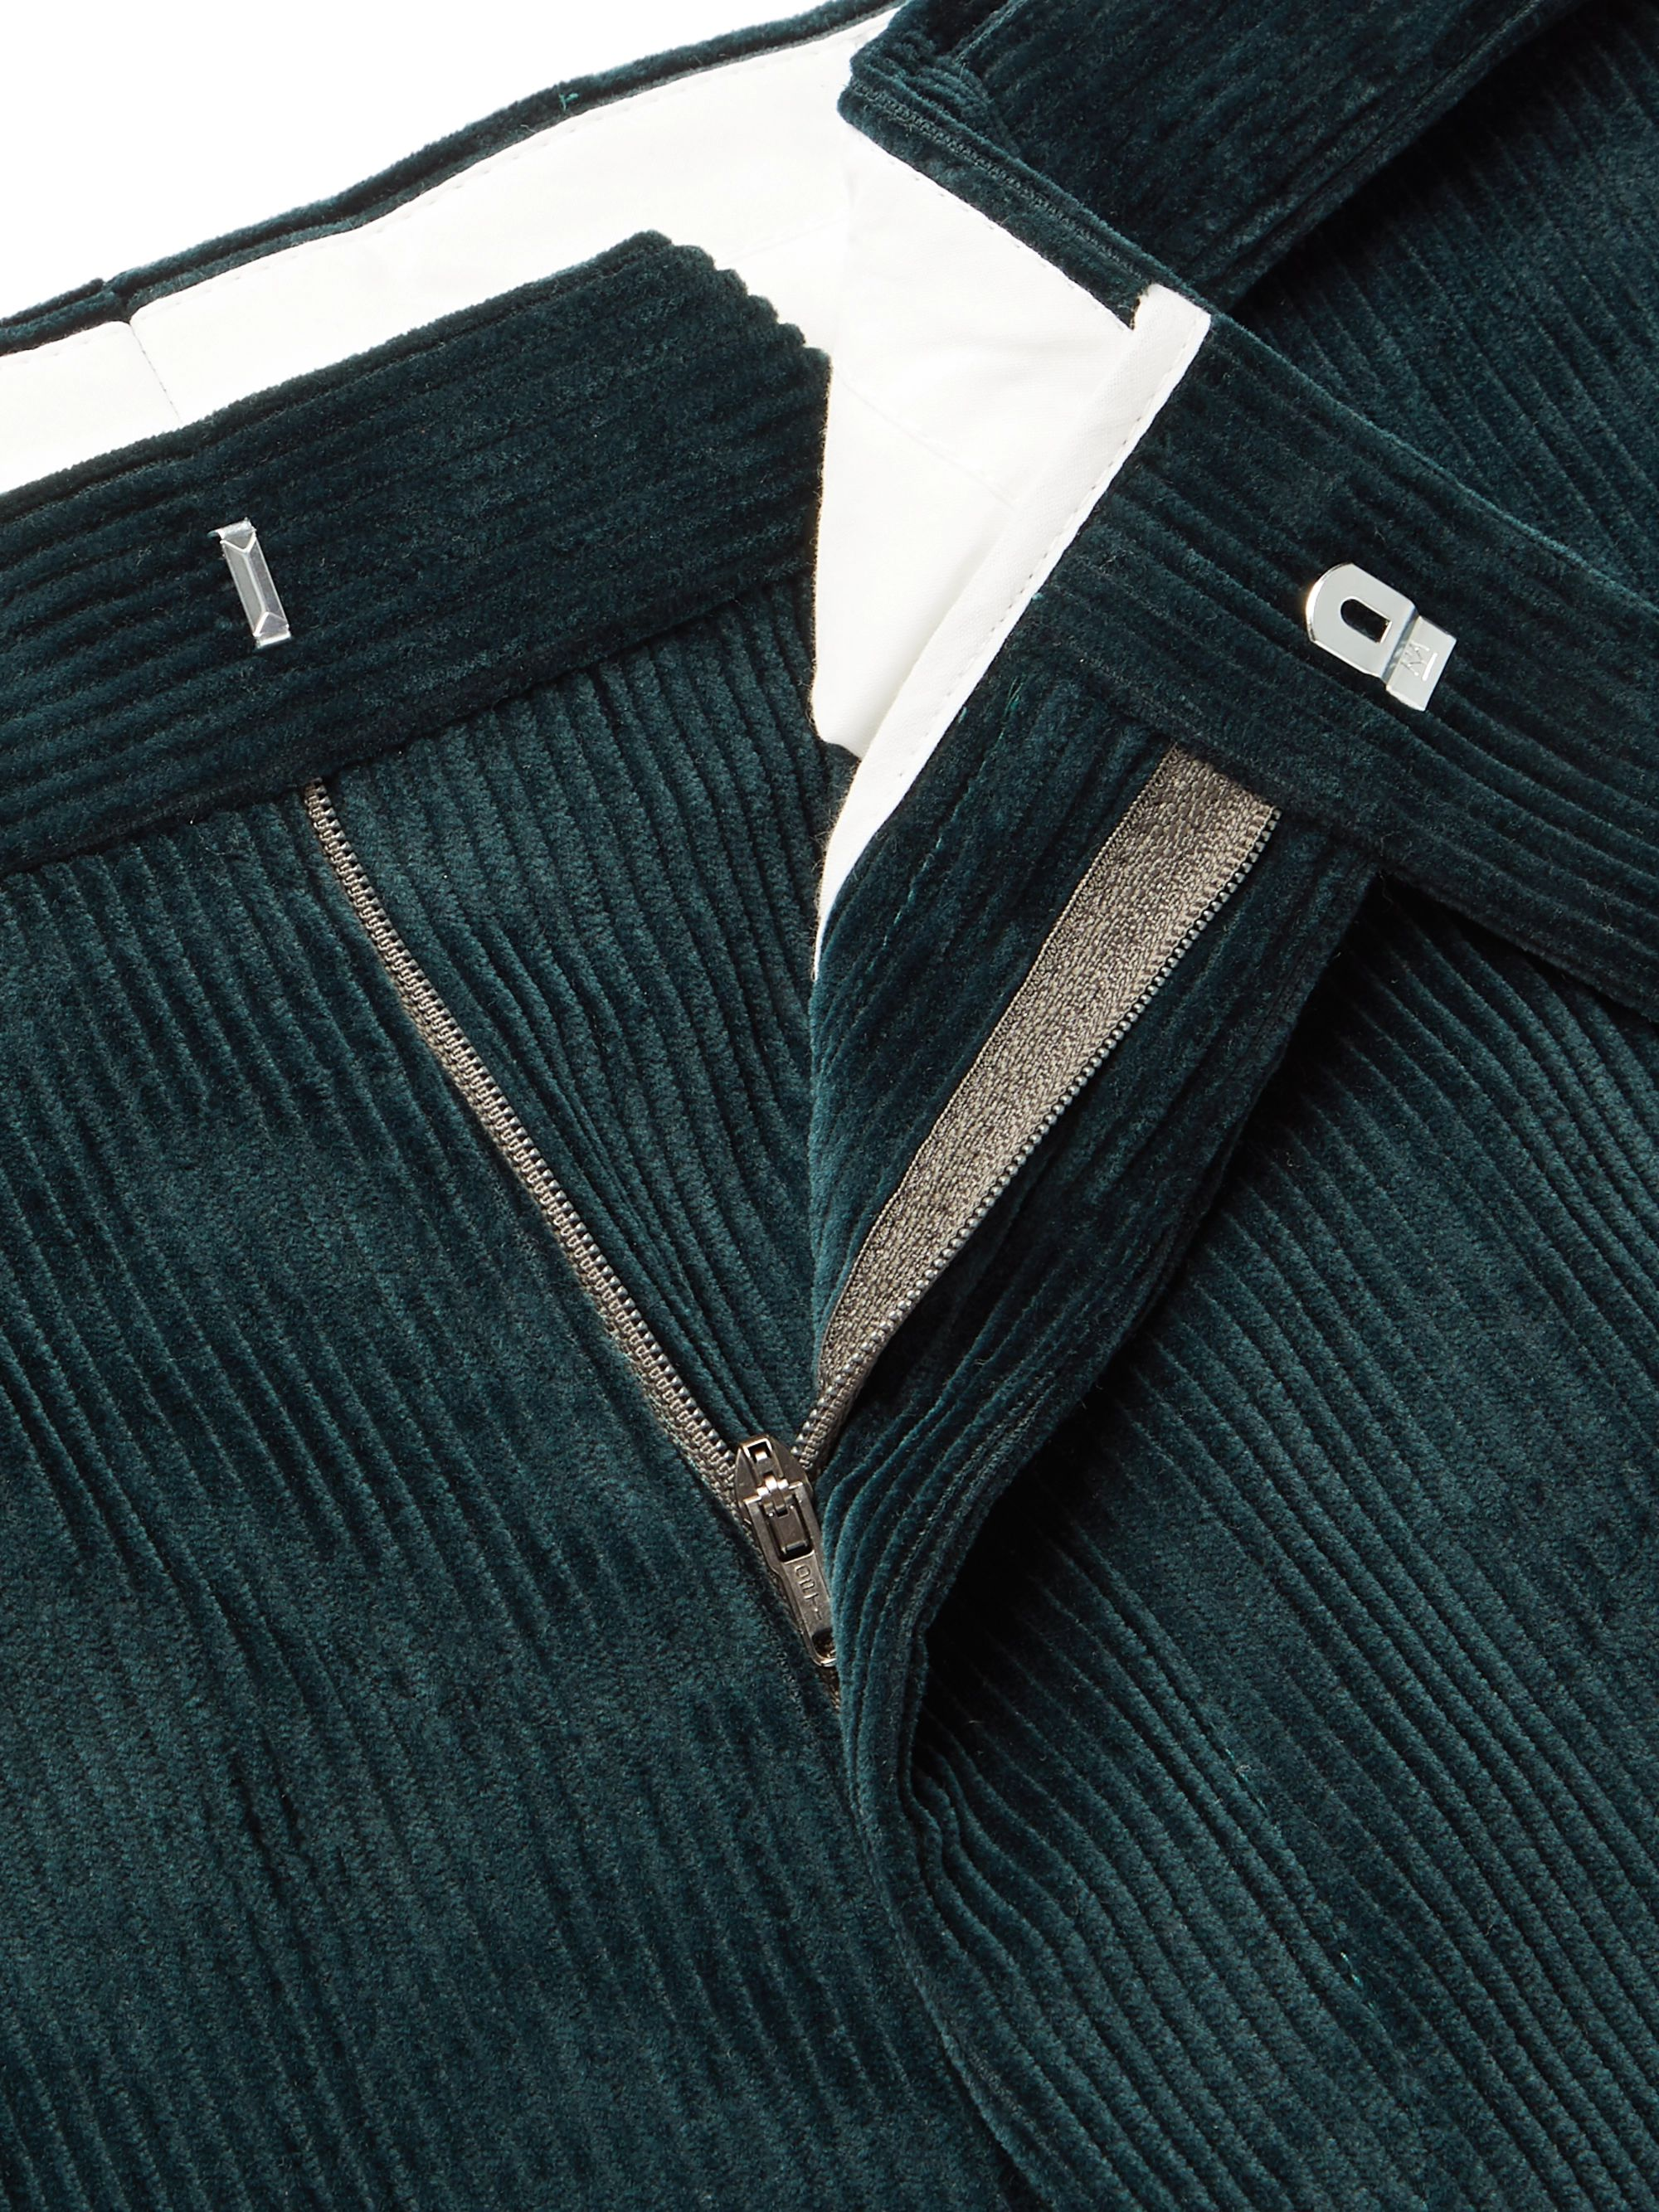 Officine Generale Dark-Green Owen Tapered Cotton-Corduroy Suit Trousers